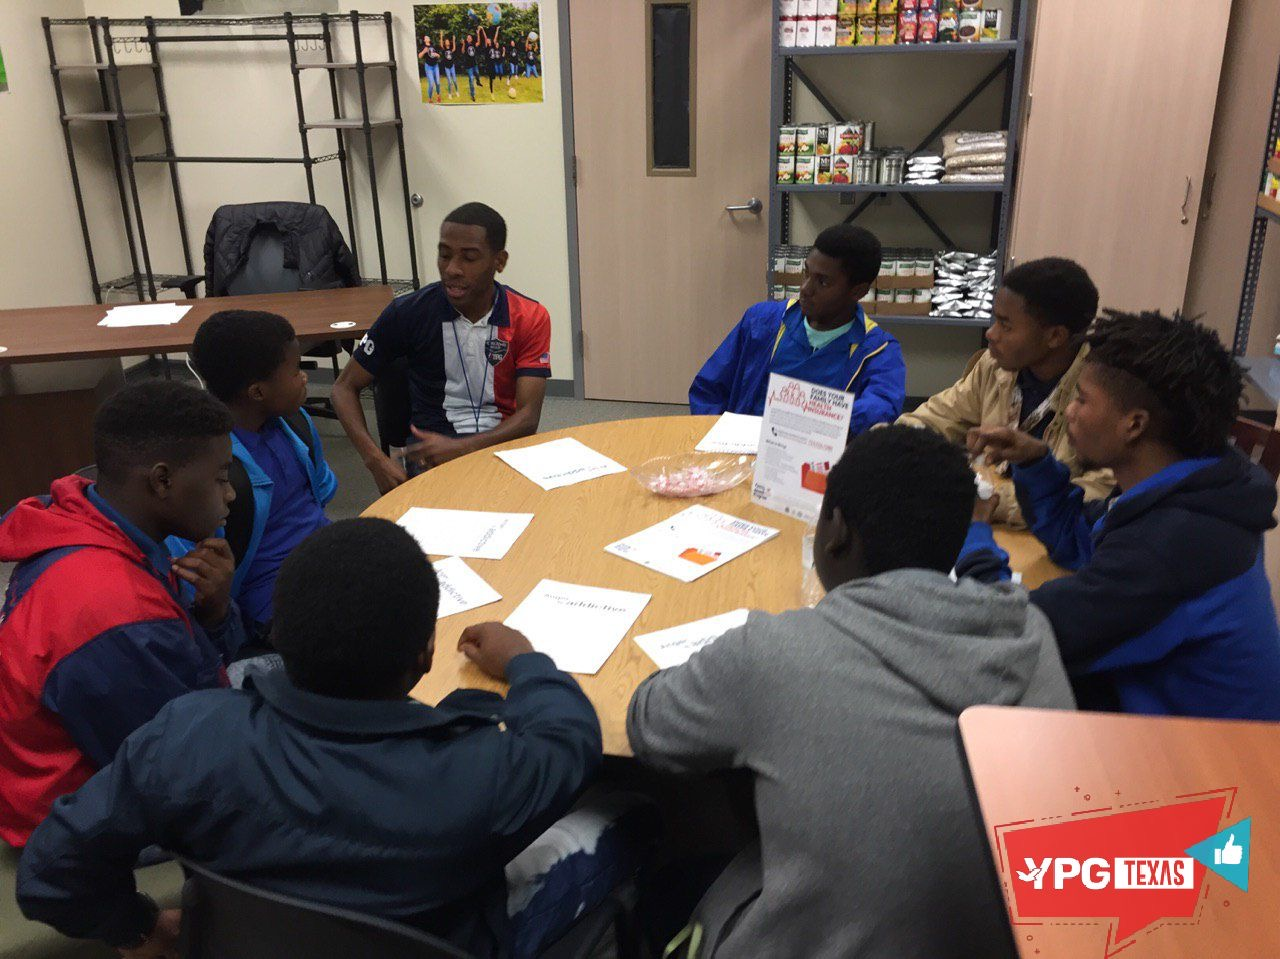 YPG Opening doors in the community